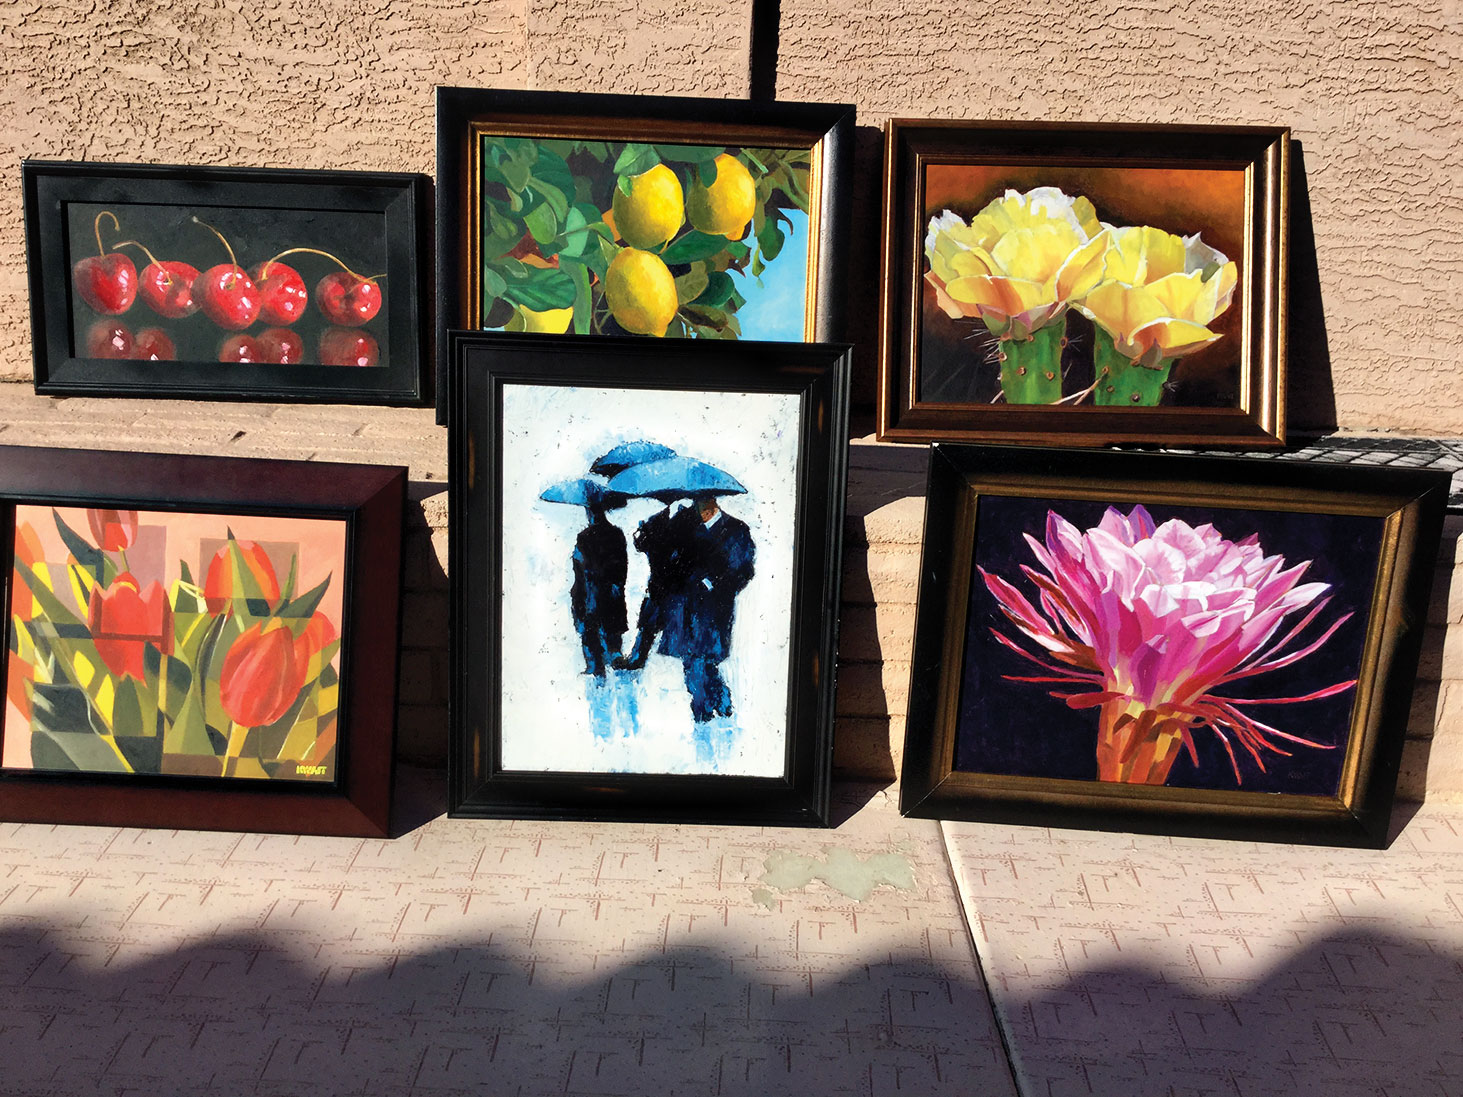 Art show showcasing work from SunBird artists